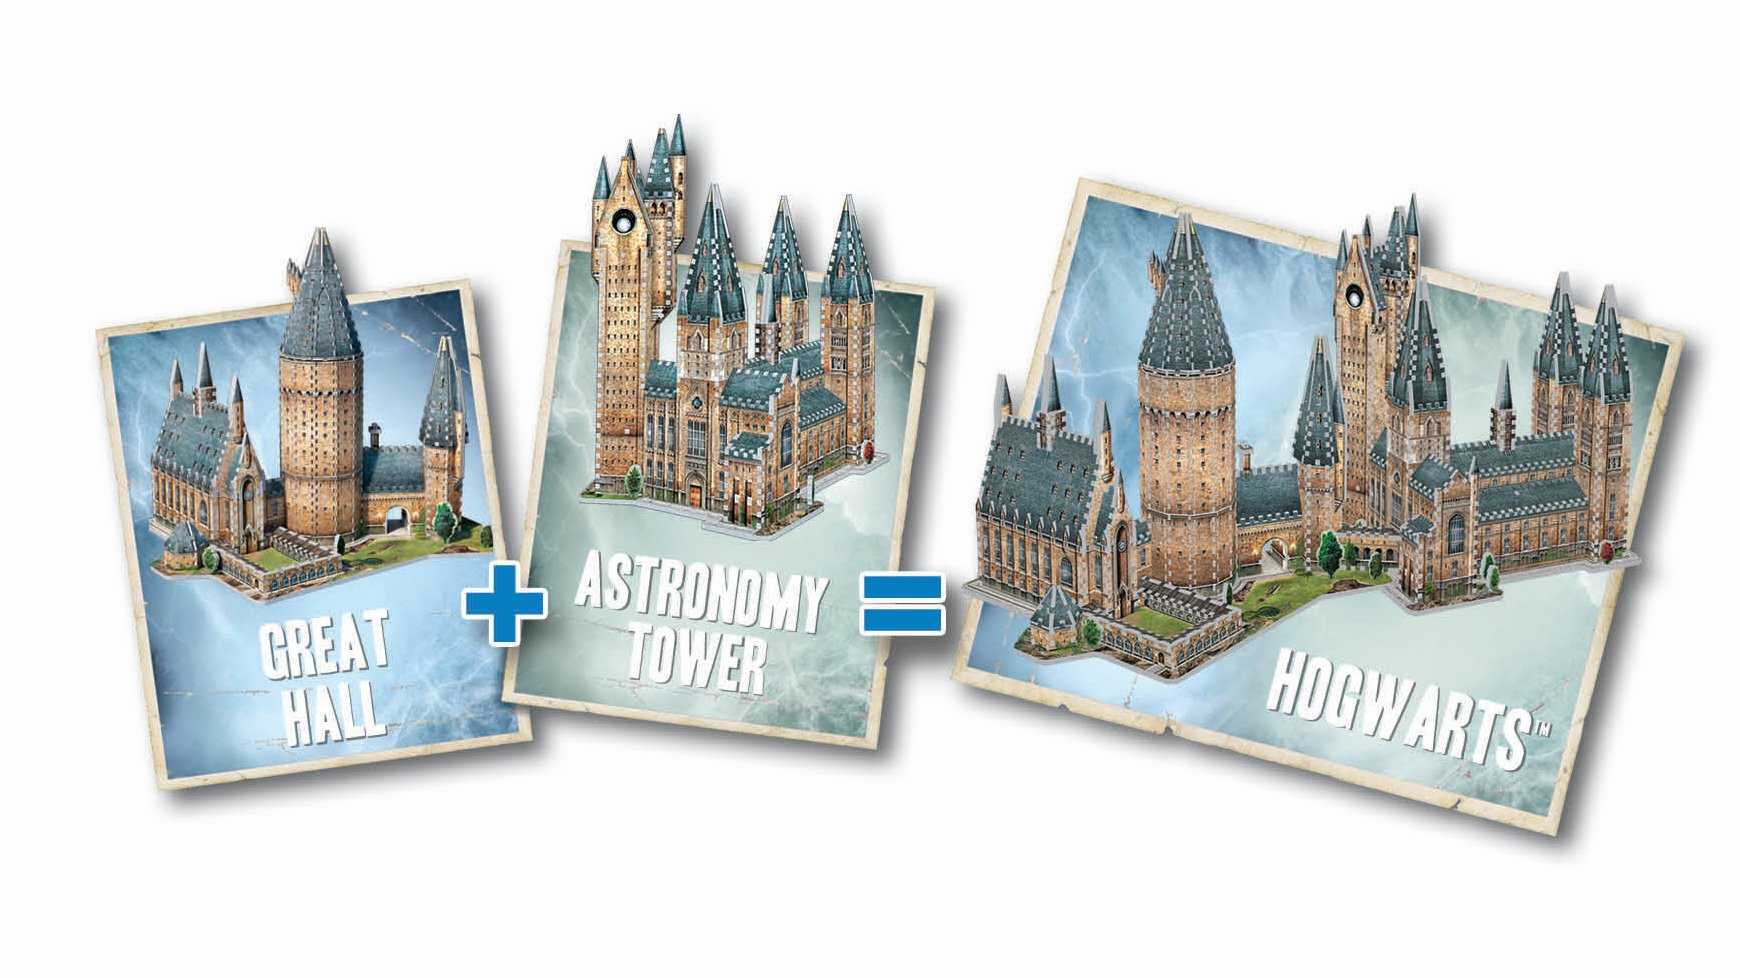 Wrebbit 3D - Harry Potter Hogwarts Castle 3D Jigsaw Puzzle, Great Hall and Astronomy Tower - Bundle of 2 - Total of 1725 Pieces by WREBBIT 3D